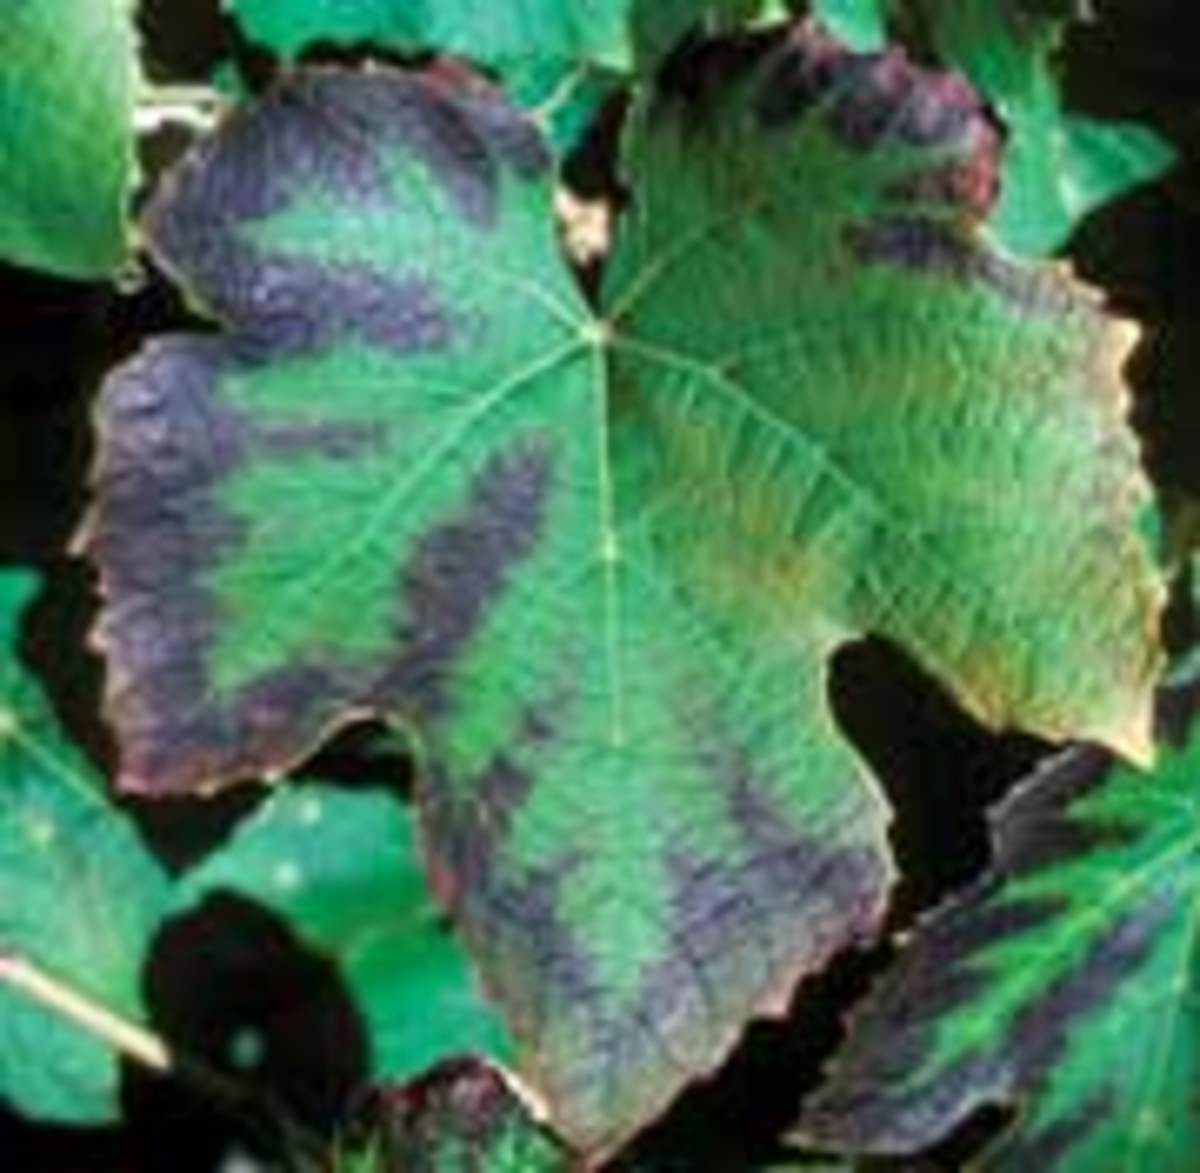 The scorched leaf margins of this leaf is a sign of potassium deficiency.